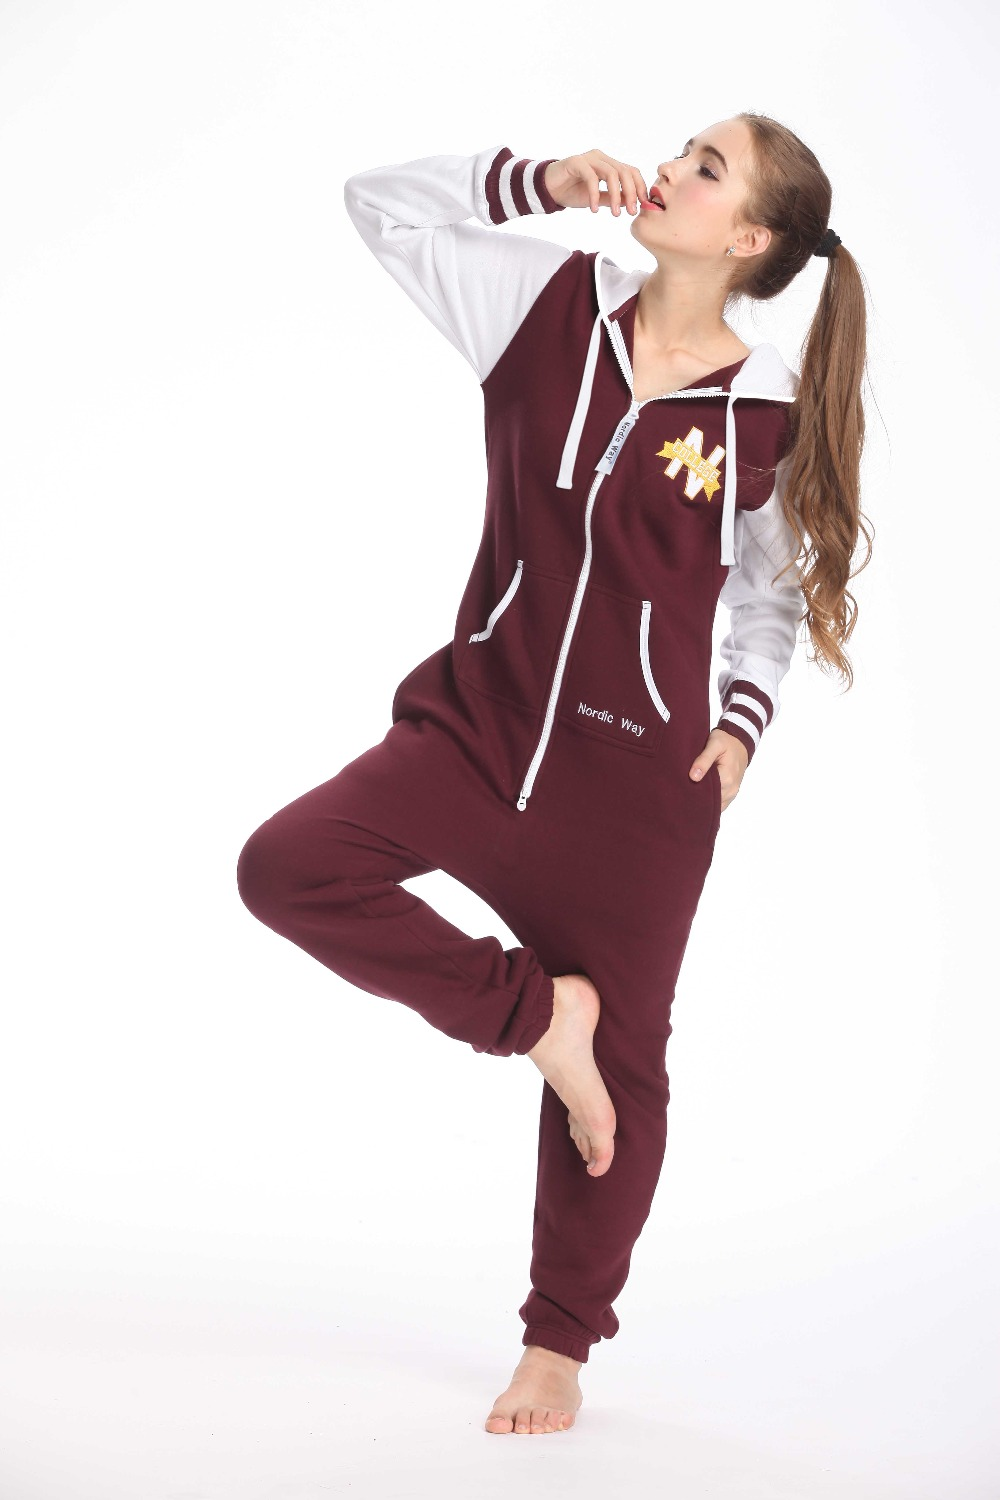 Nordic Way College Print Romper One Piece Jumpsuit Adult Unisex Playsuit Hoody Fleece Onsie